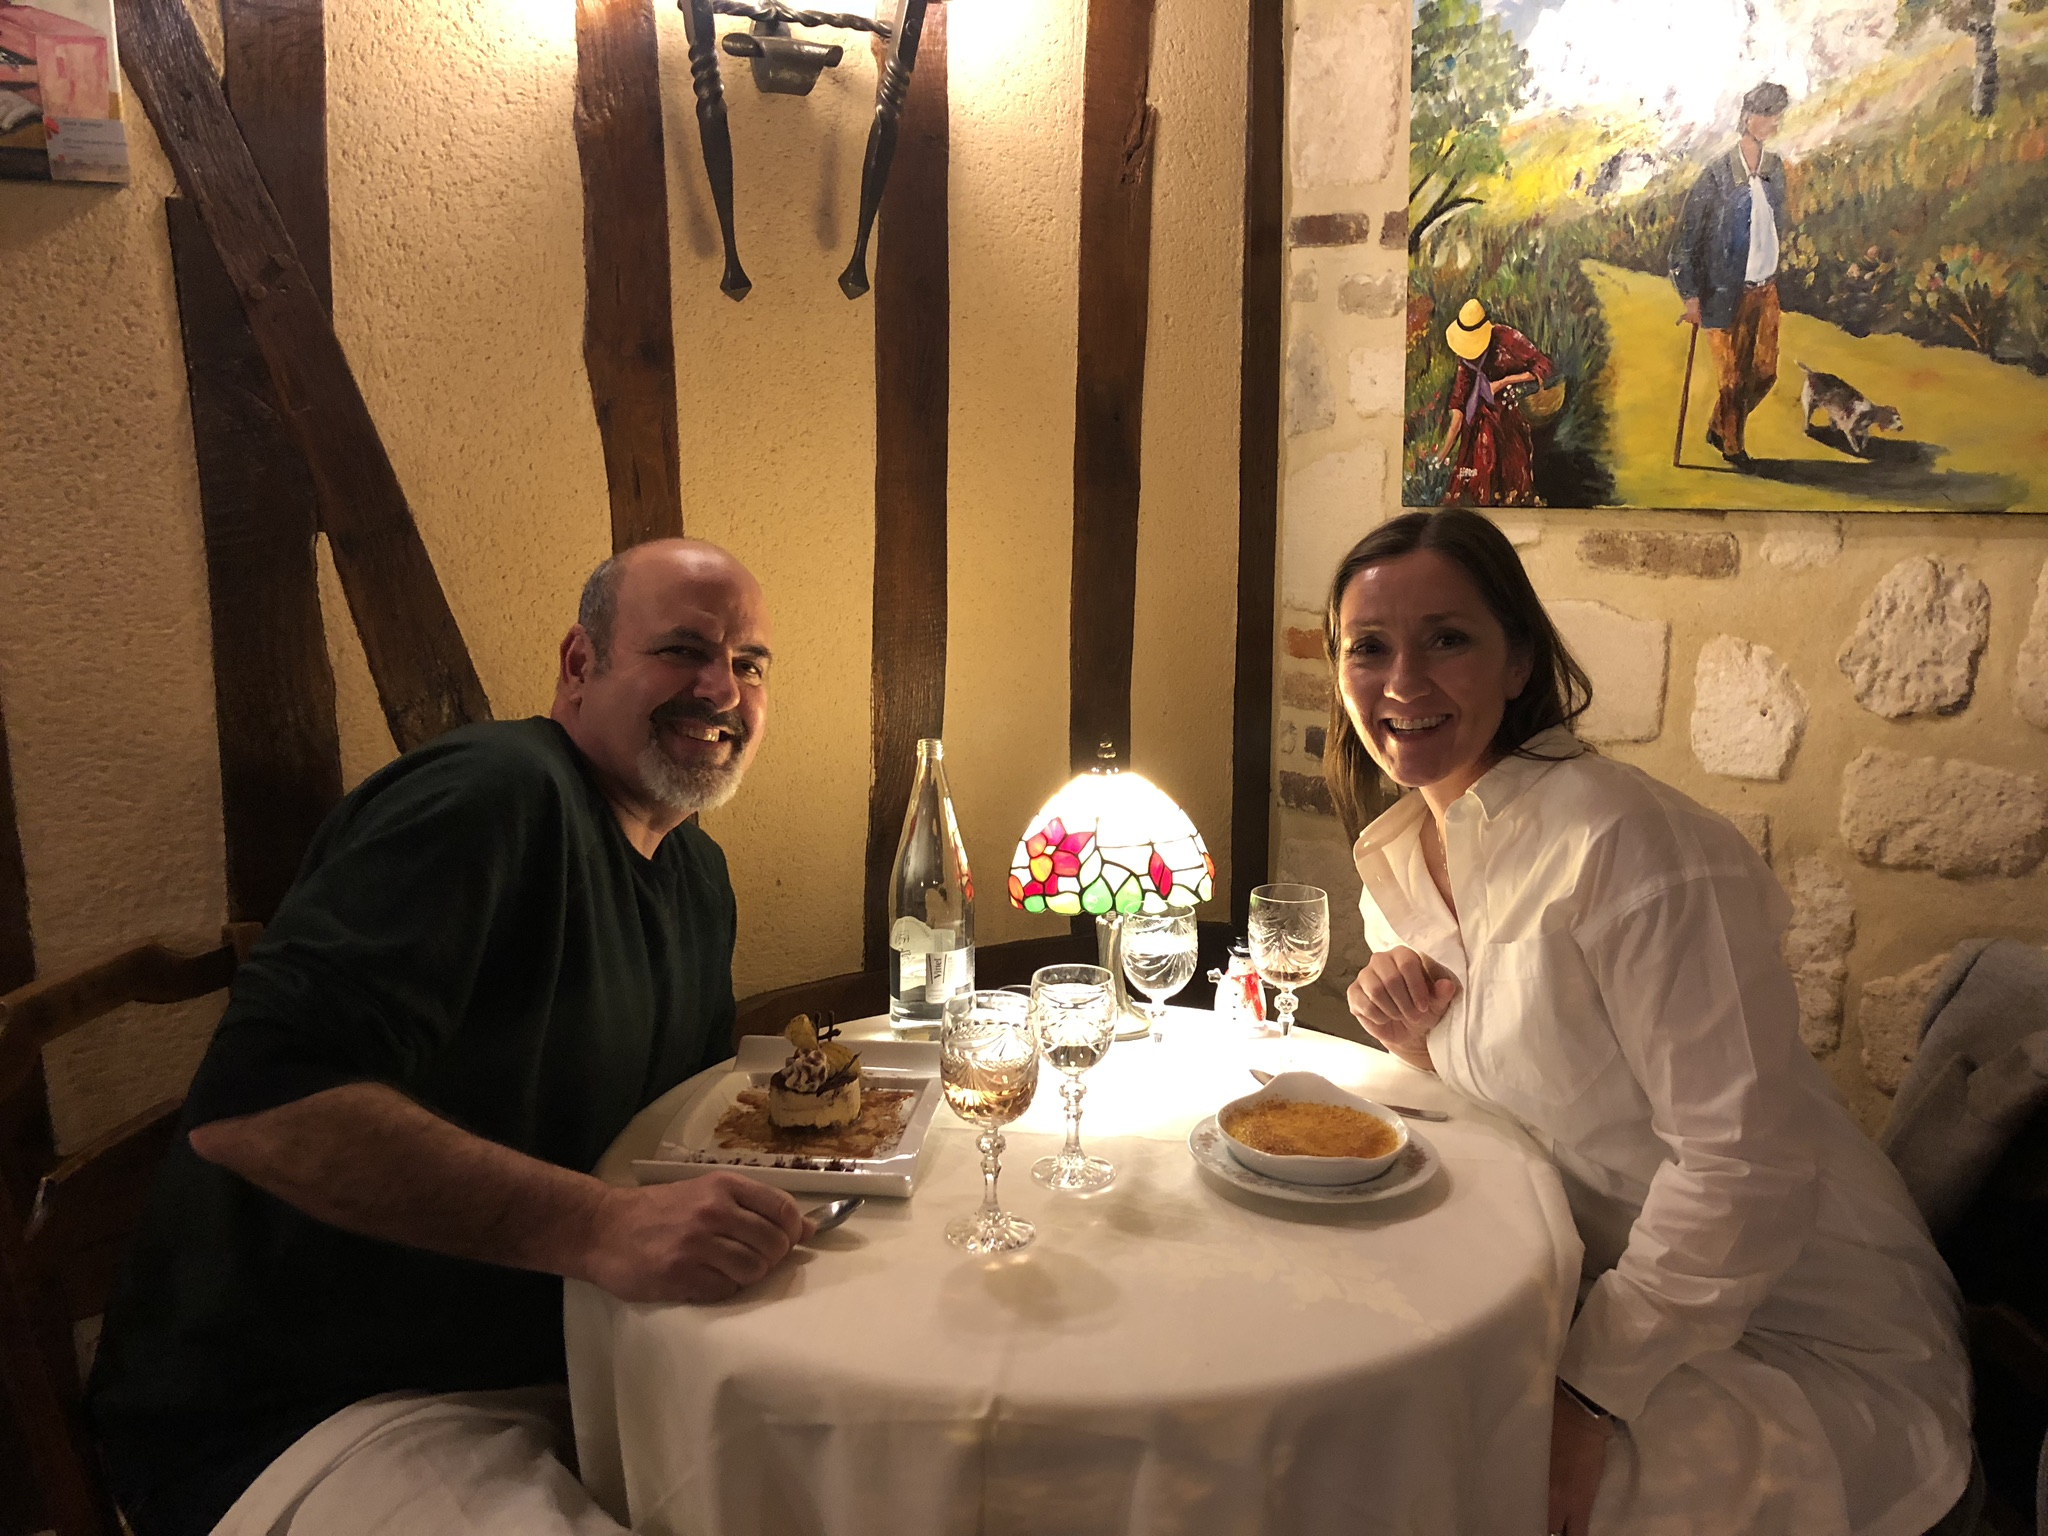 Our last night dining out and he finally ate some authentic French cuisine with me.